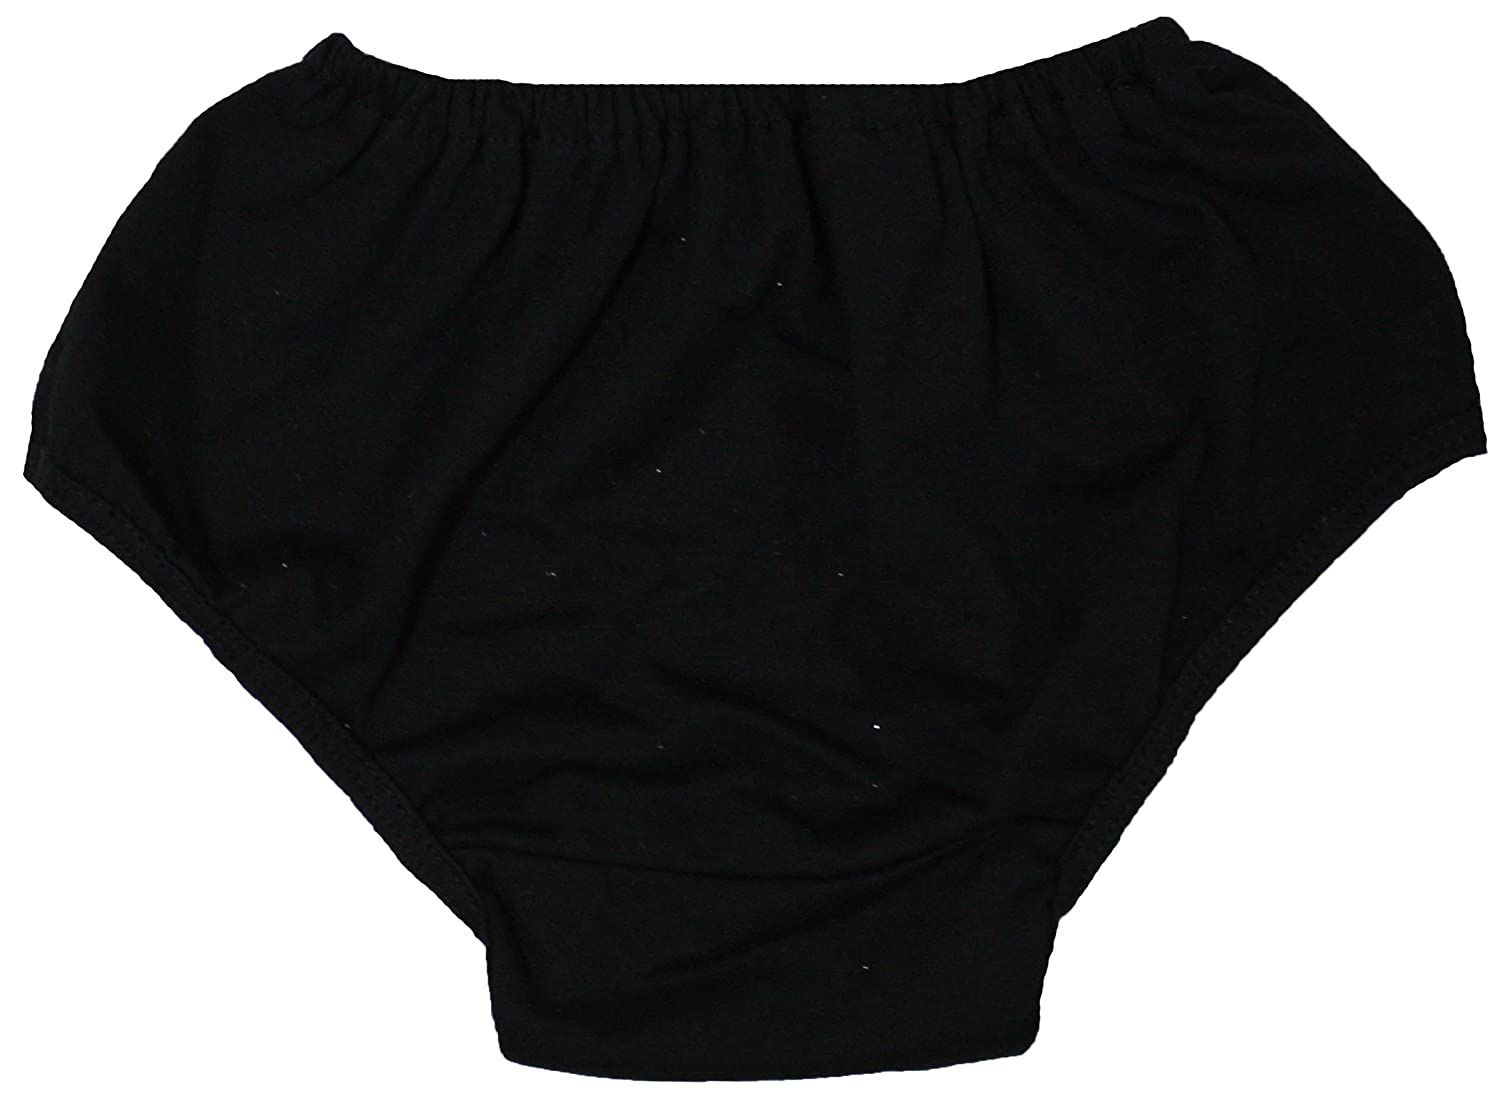 Petitebella Dress Plain Black Cotton Bloomer For Baby 6-24m NF00015